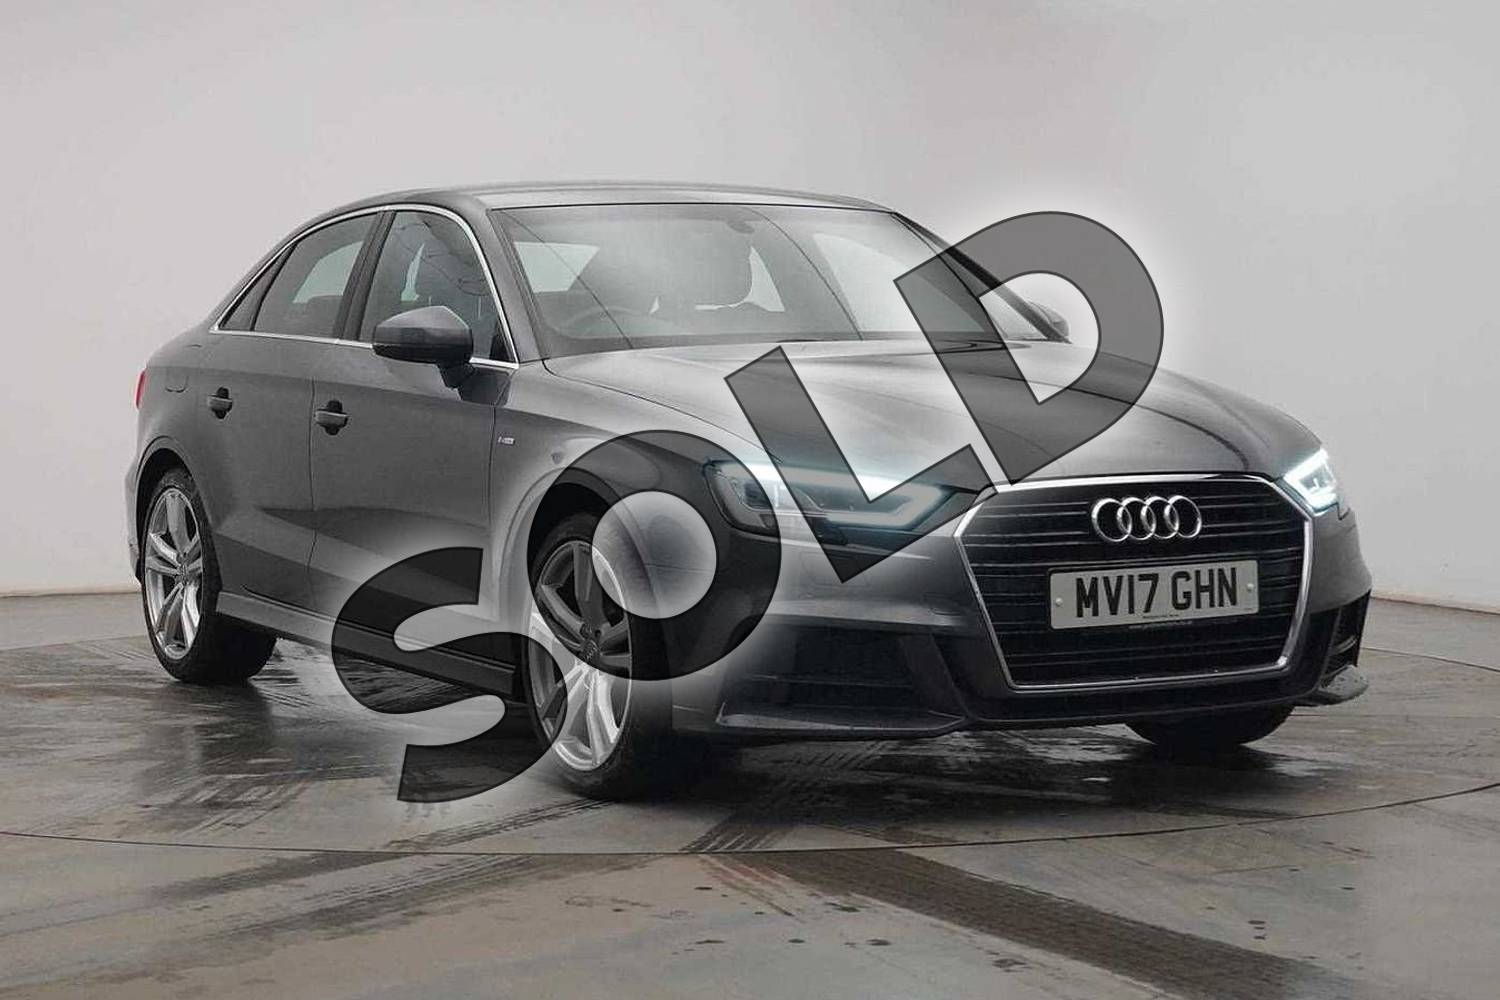 2017 Audi A3 Saloon 1.4 TFSI S Line 4dr in Daytona Grey Pearlescent at Birmingham Audi